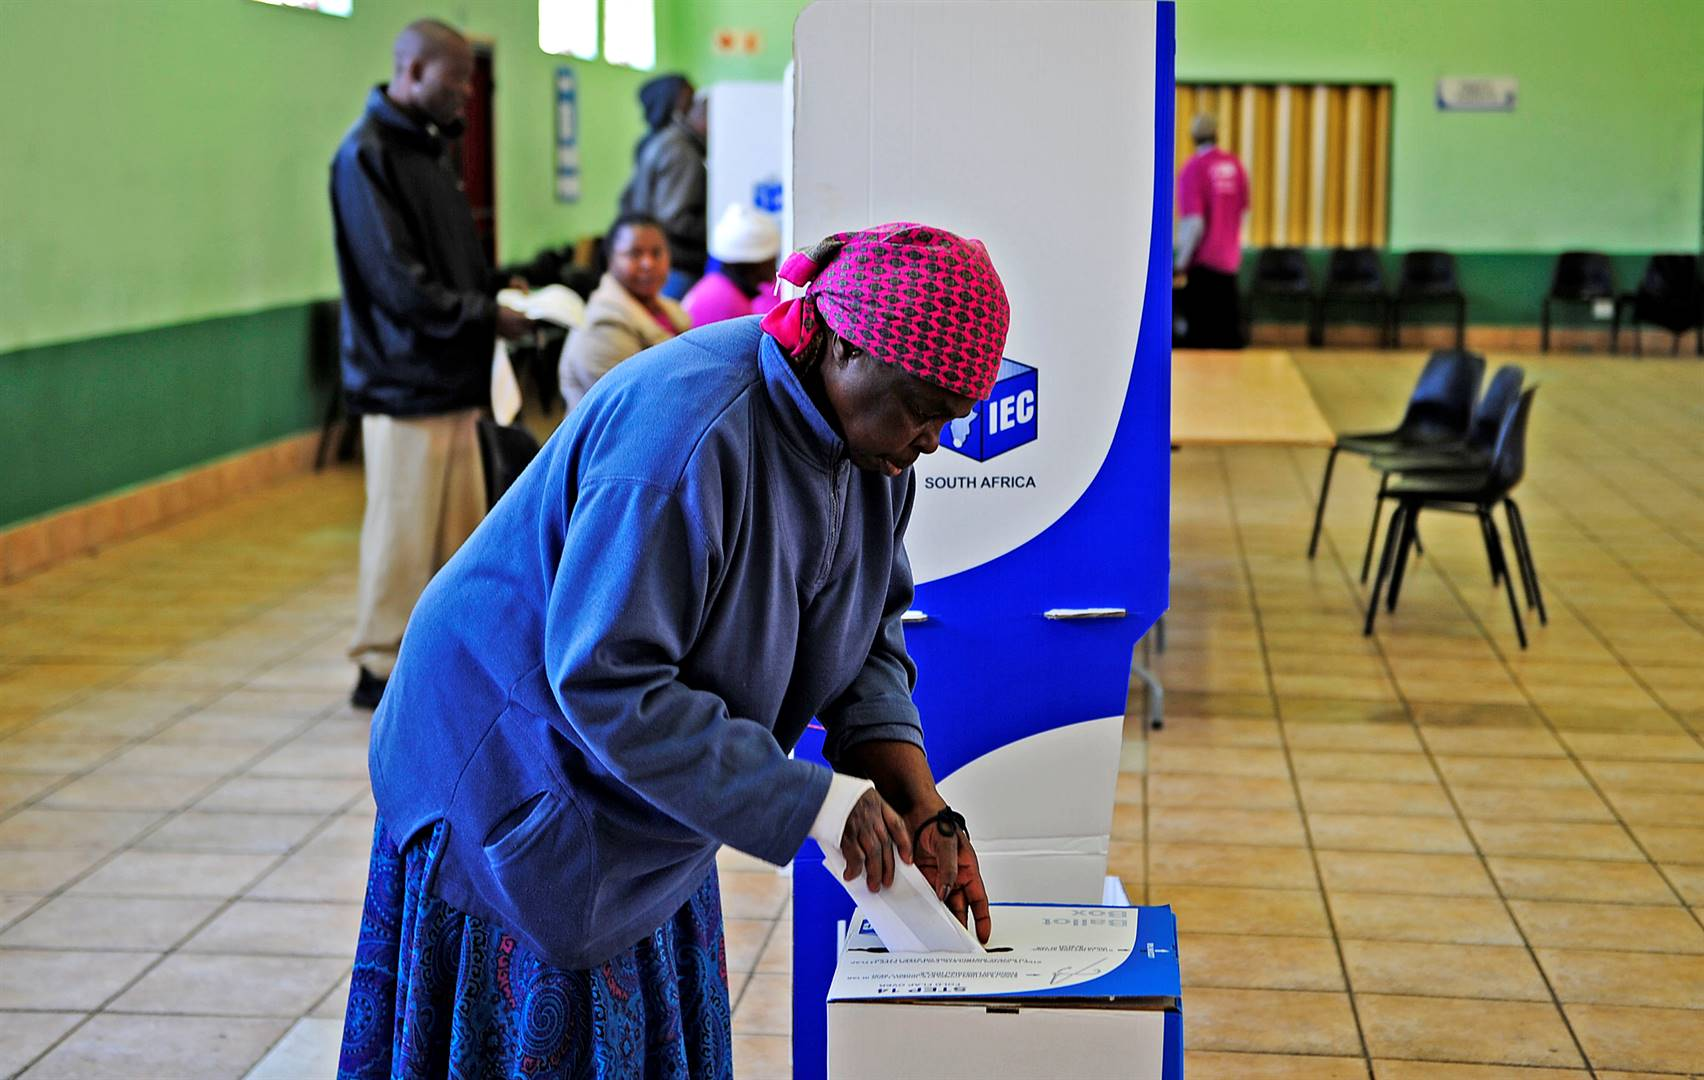 The application of the new law will depend on the IEC's readiness to play its new regulatory role. Picture: Tebogo Letsie